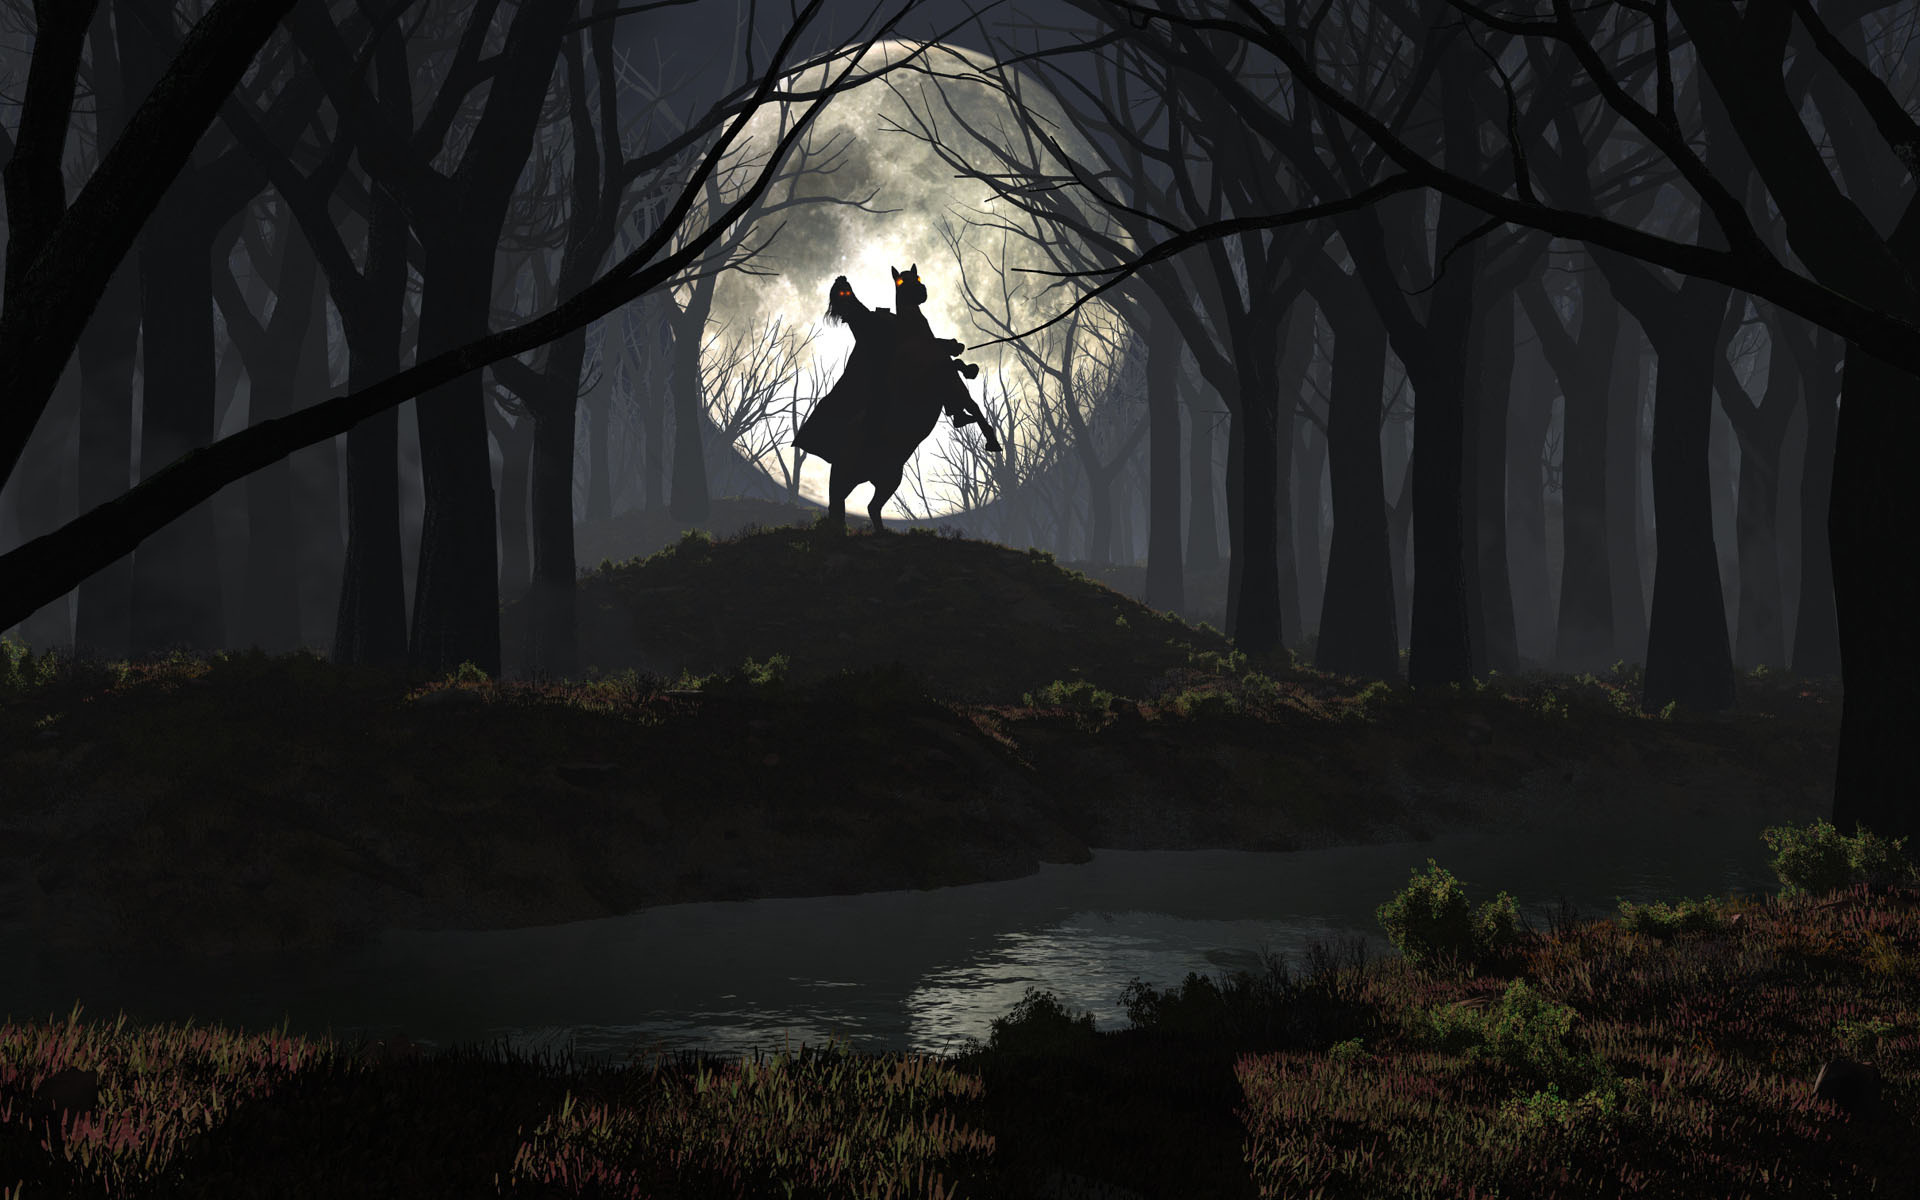 Rider In The Spooky Forest Wallpaper PIC MCH098882